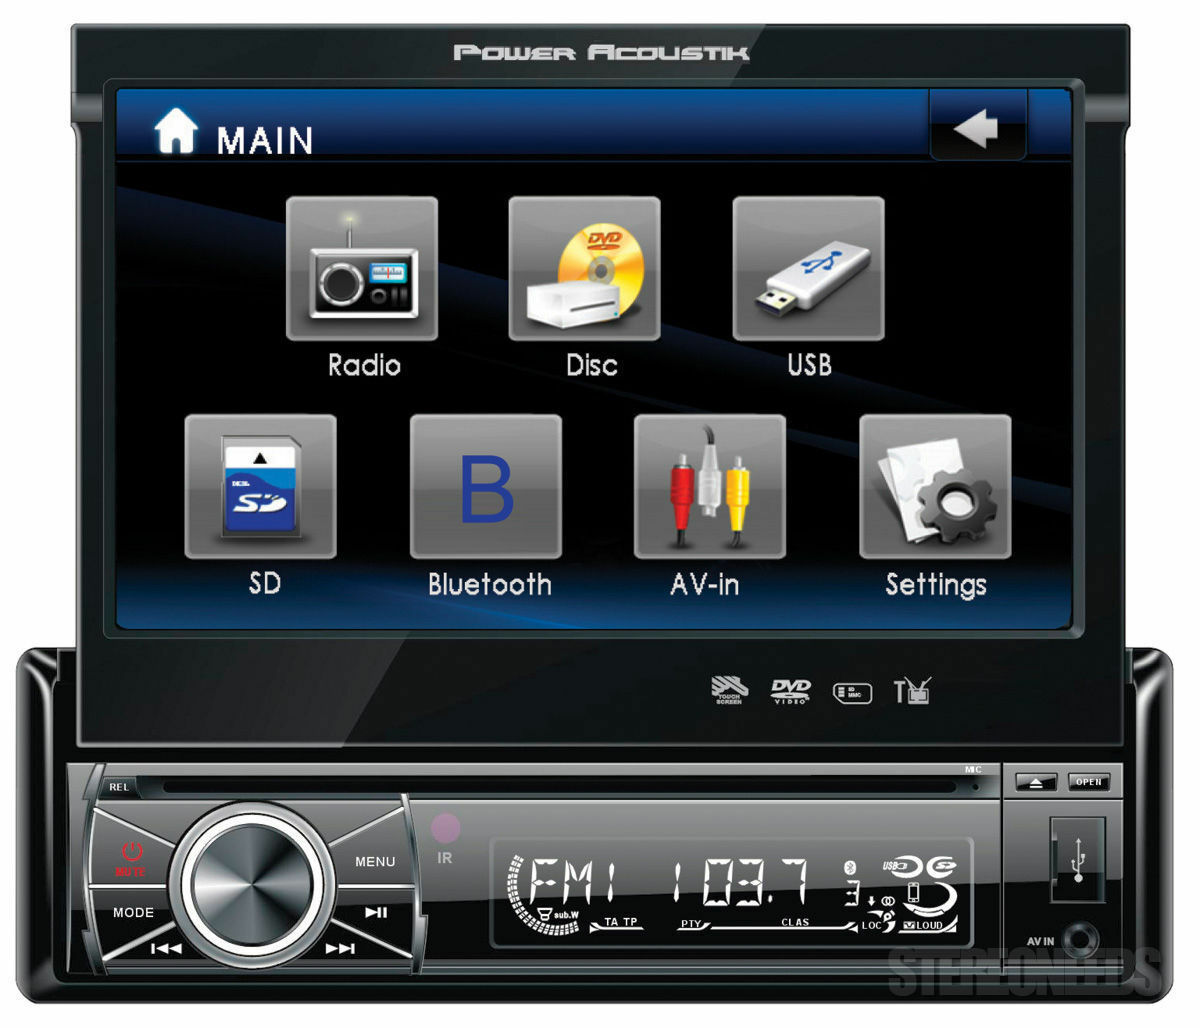 s l1600 power acoustik video in dash units without gps ebay Power Acoustik PD- 710 at gsmportal.co